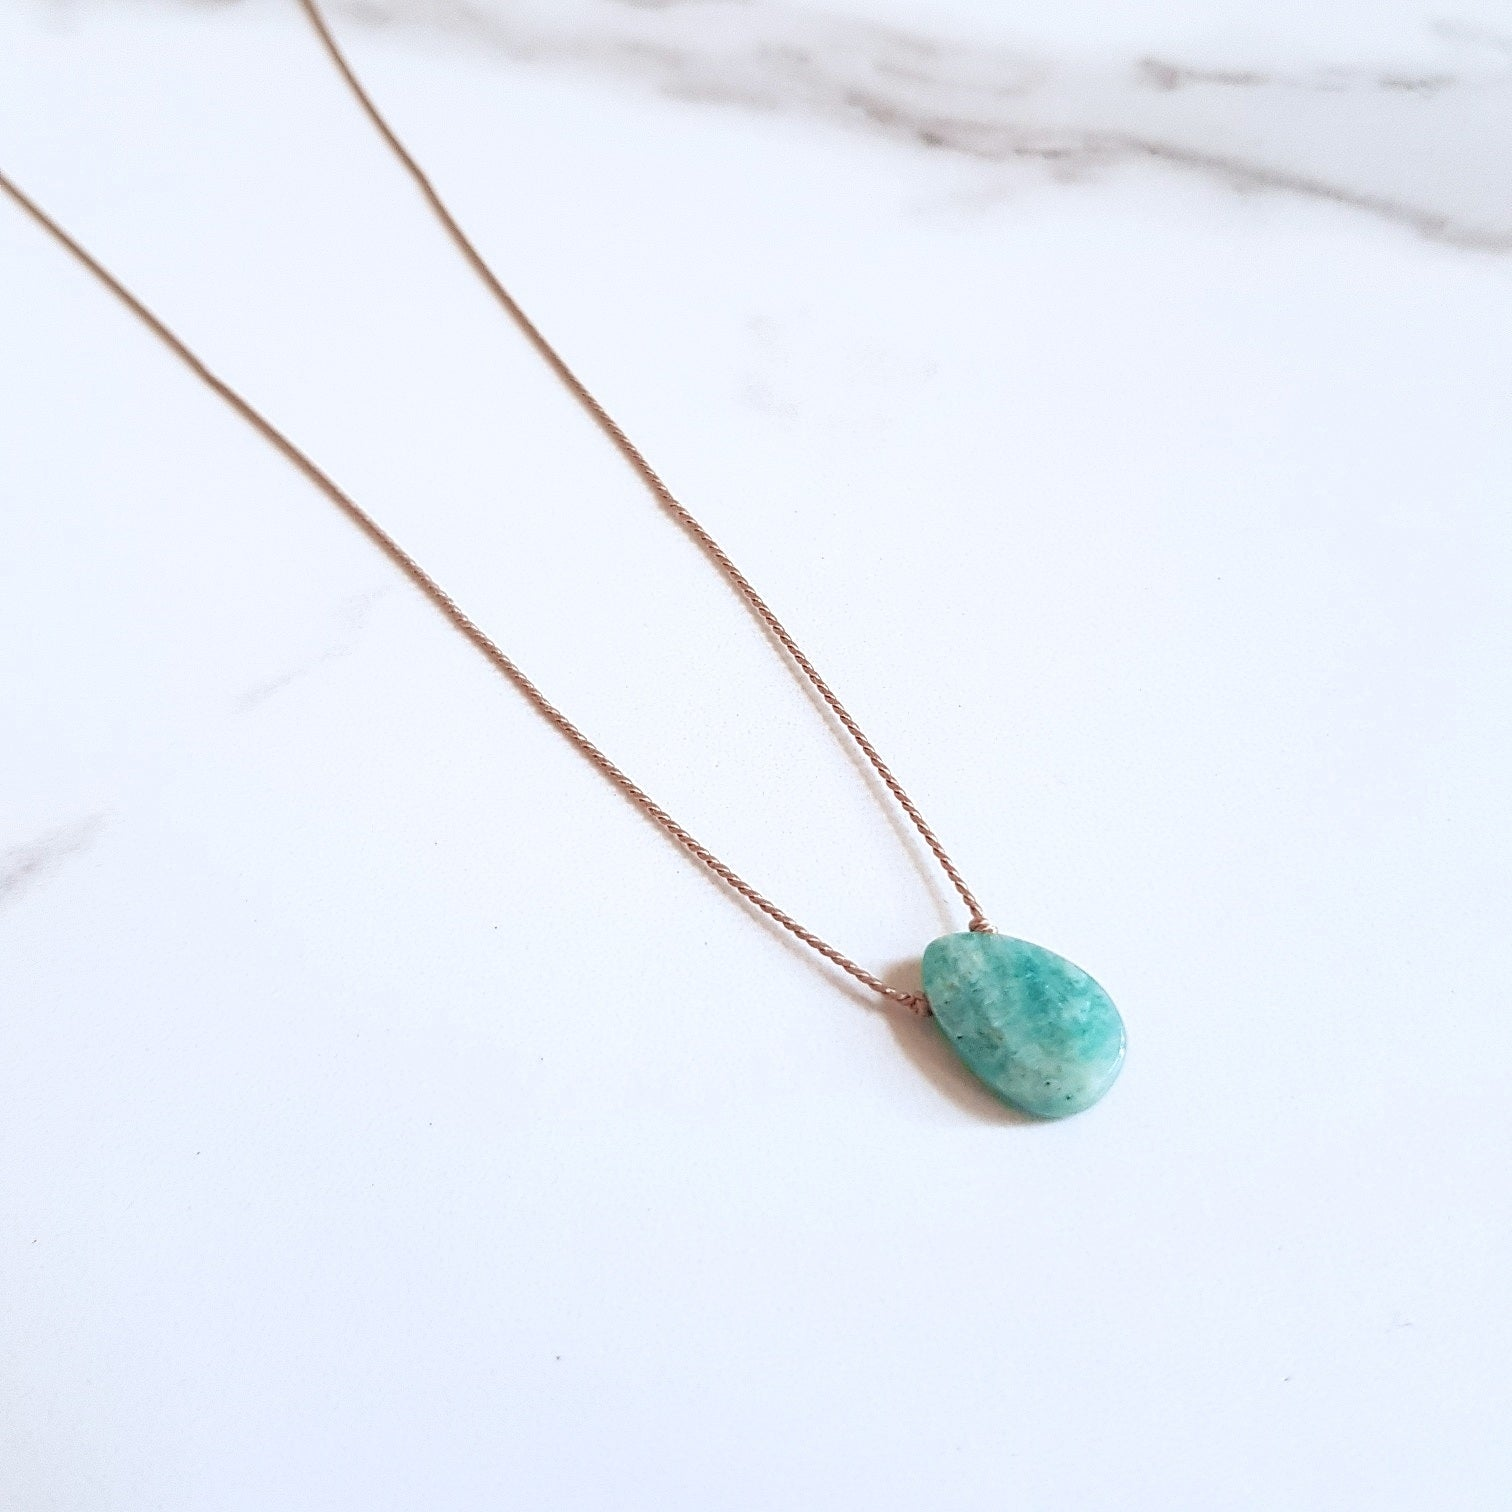 Nylon Dainty - Amazonite